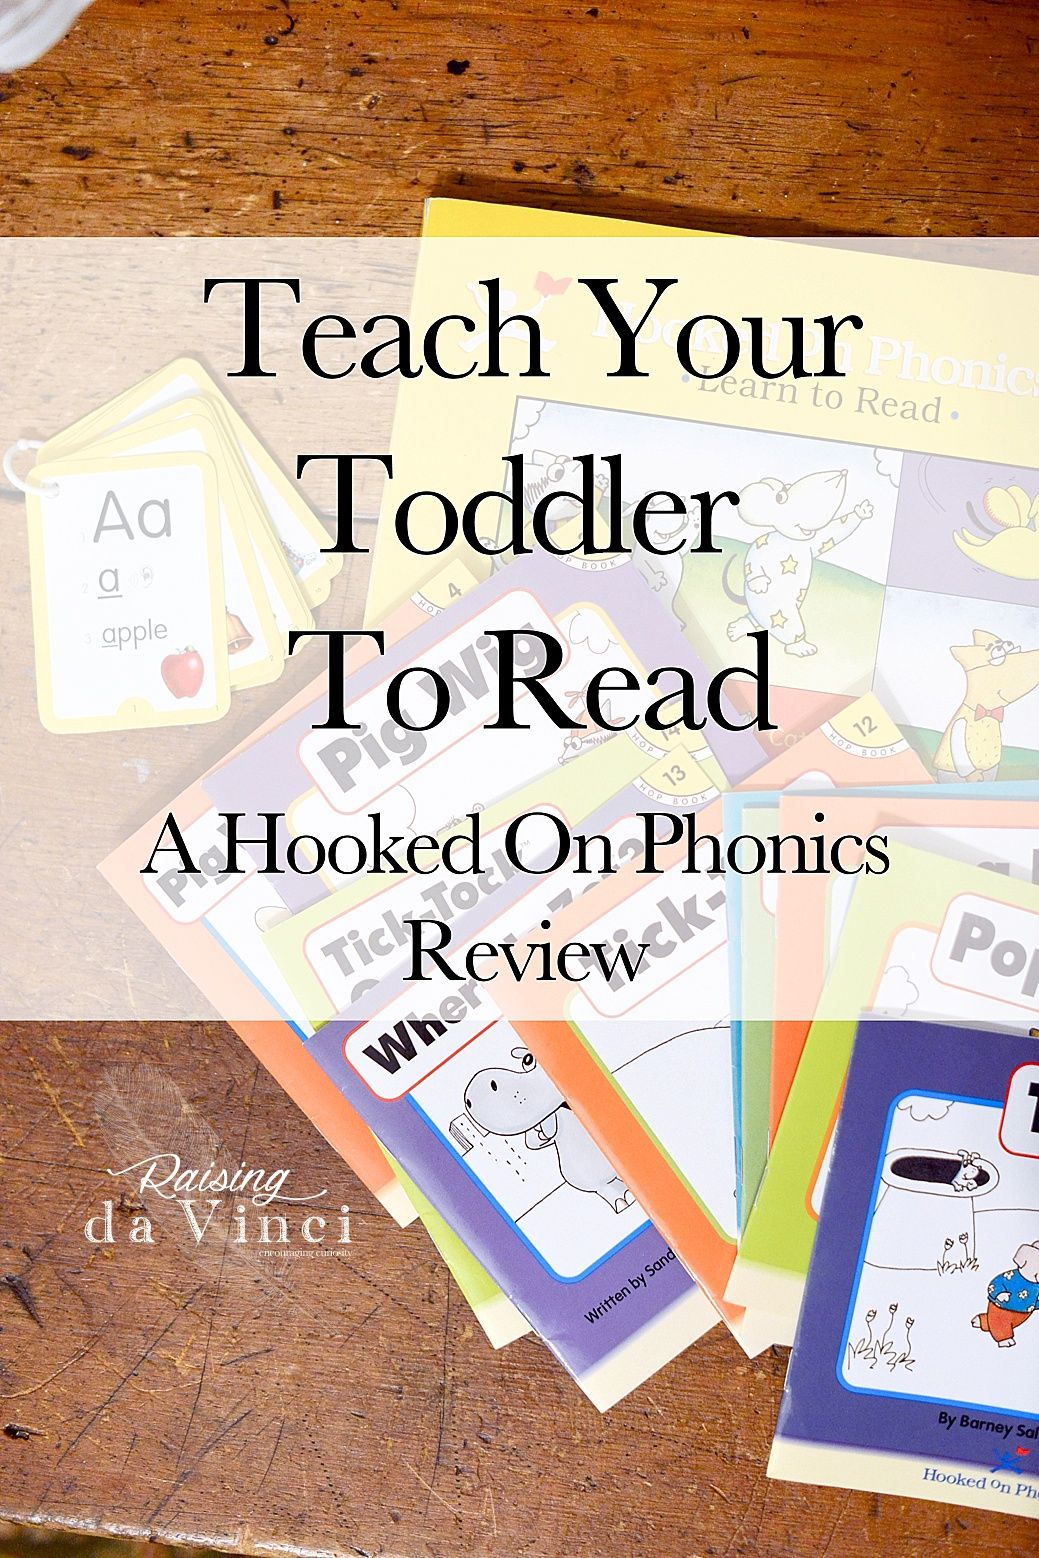 Teach Your Toddler To Read